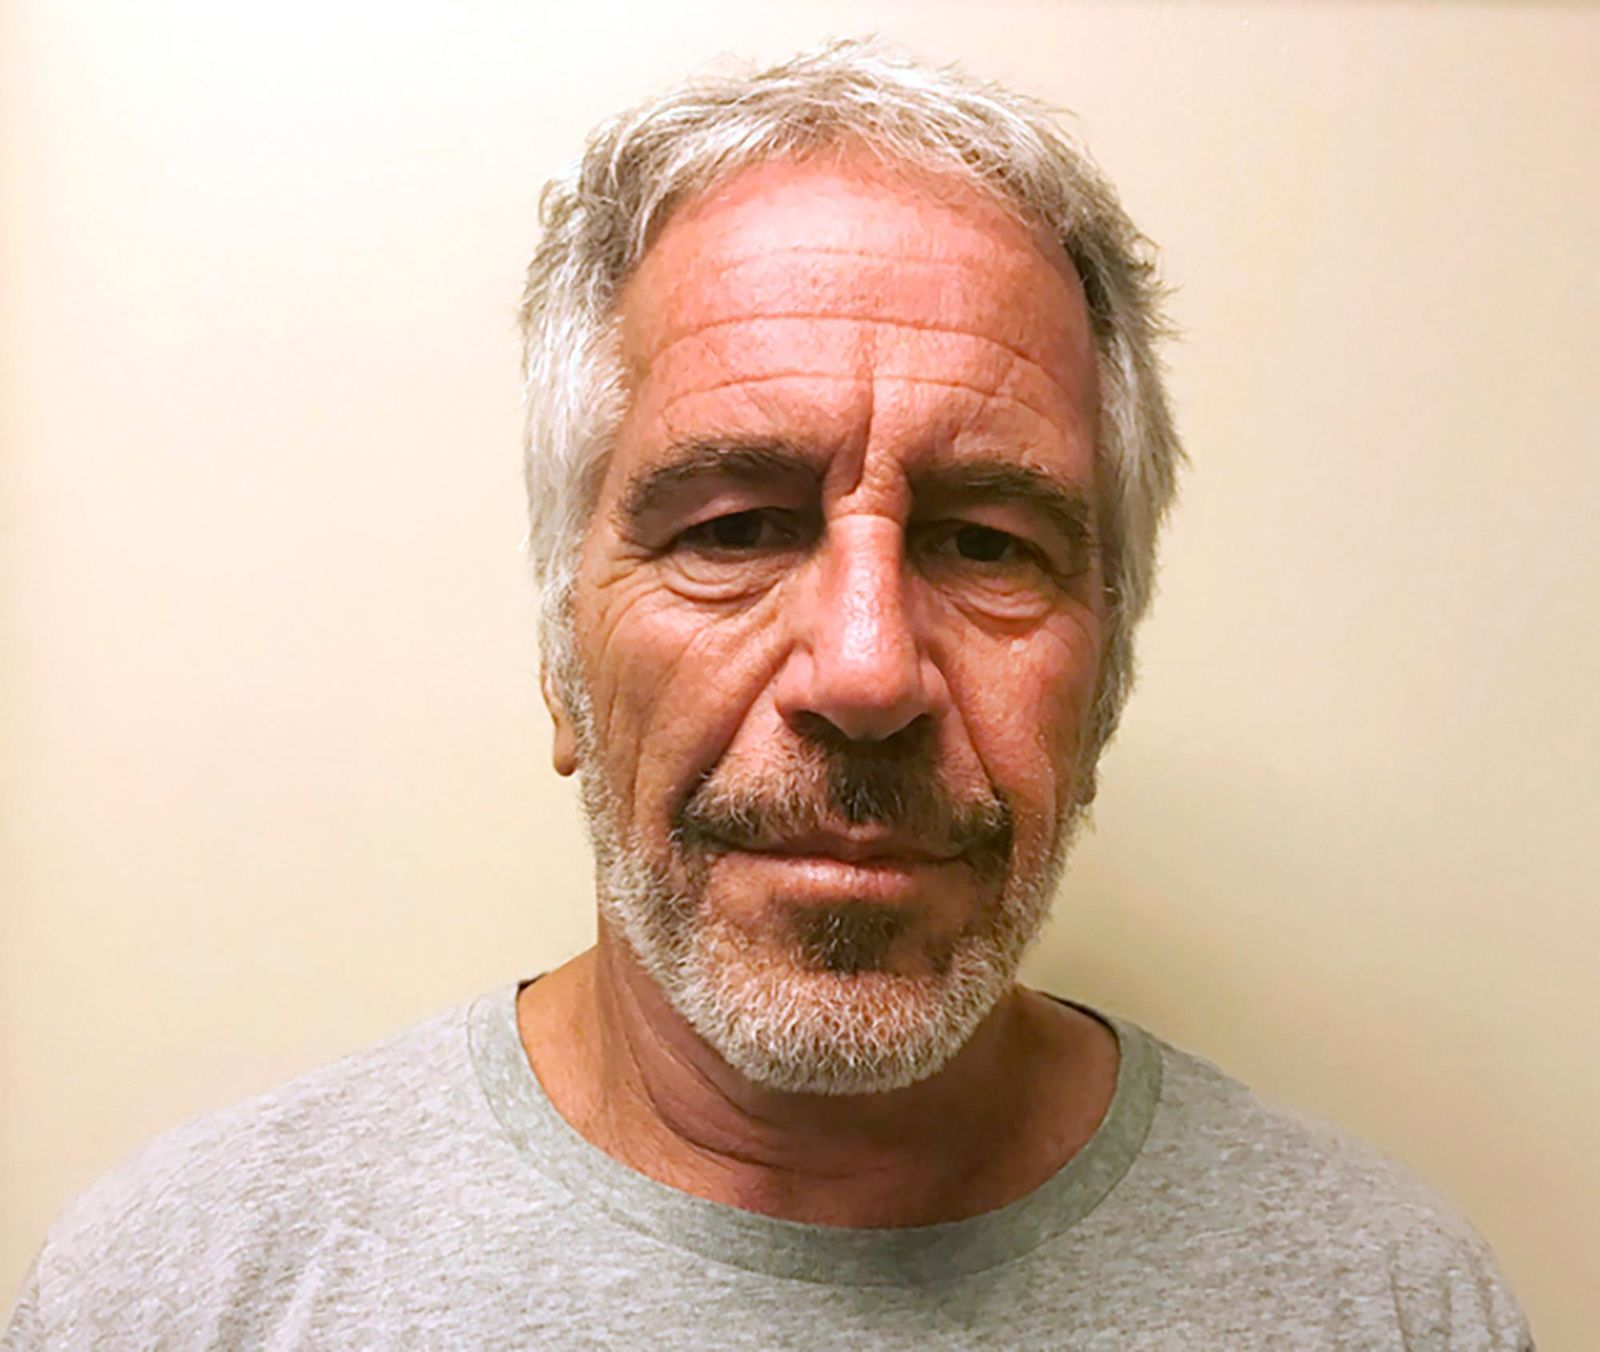 FILE - This March 28, 2017, file photo, provided by the New York State Sex Offender Registry shows Jeffrey Epstein. New York City's medical examiner has ruled Epstein's death a suicide. (New York State Sex Offender Registry via AP, File)